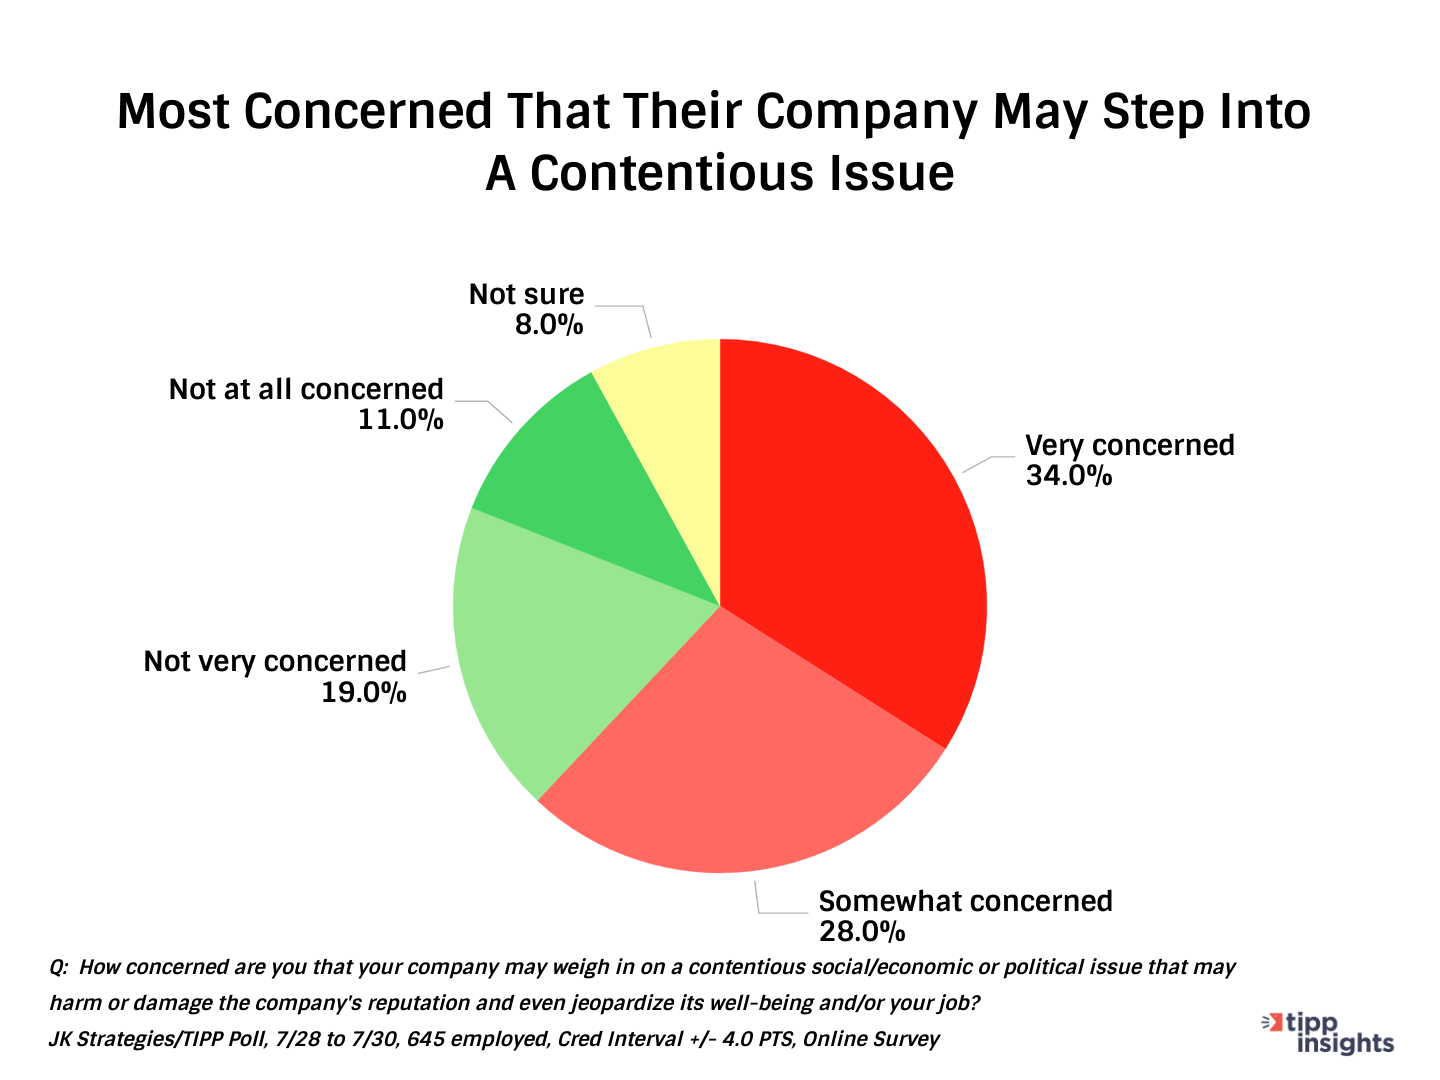 TIPP Poll/JK Strategies Results: Americans concerns that their company may join a contentious issueChart 3